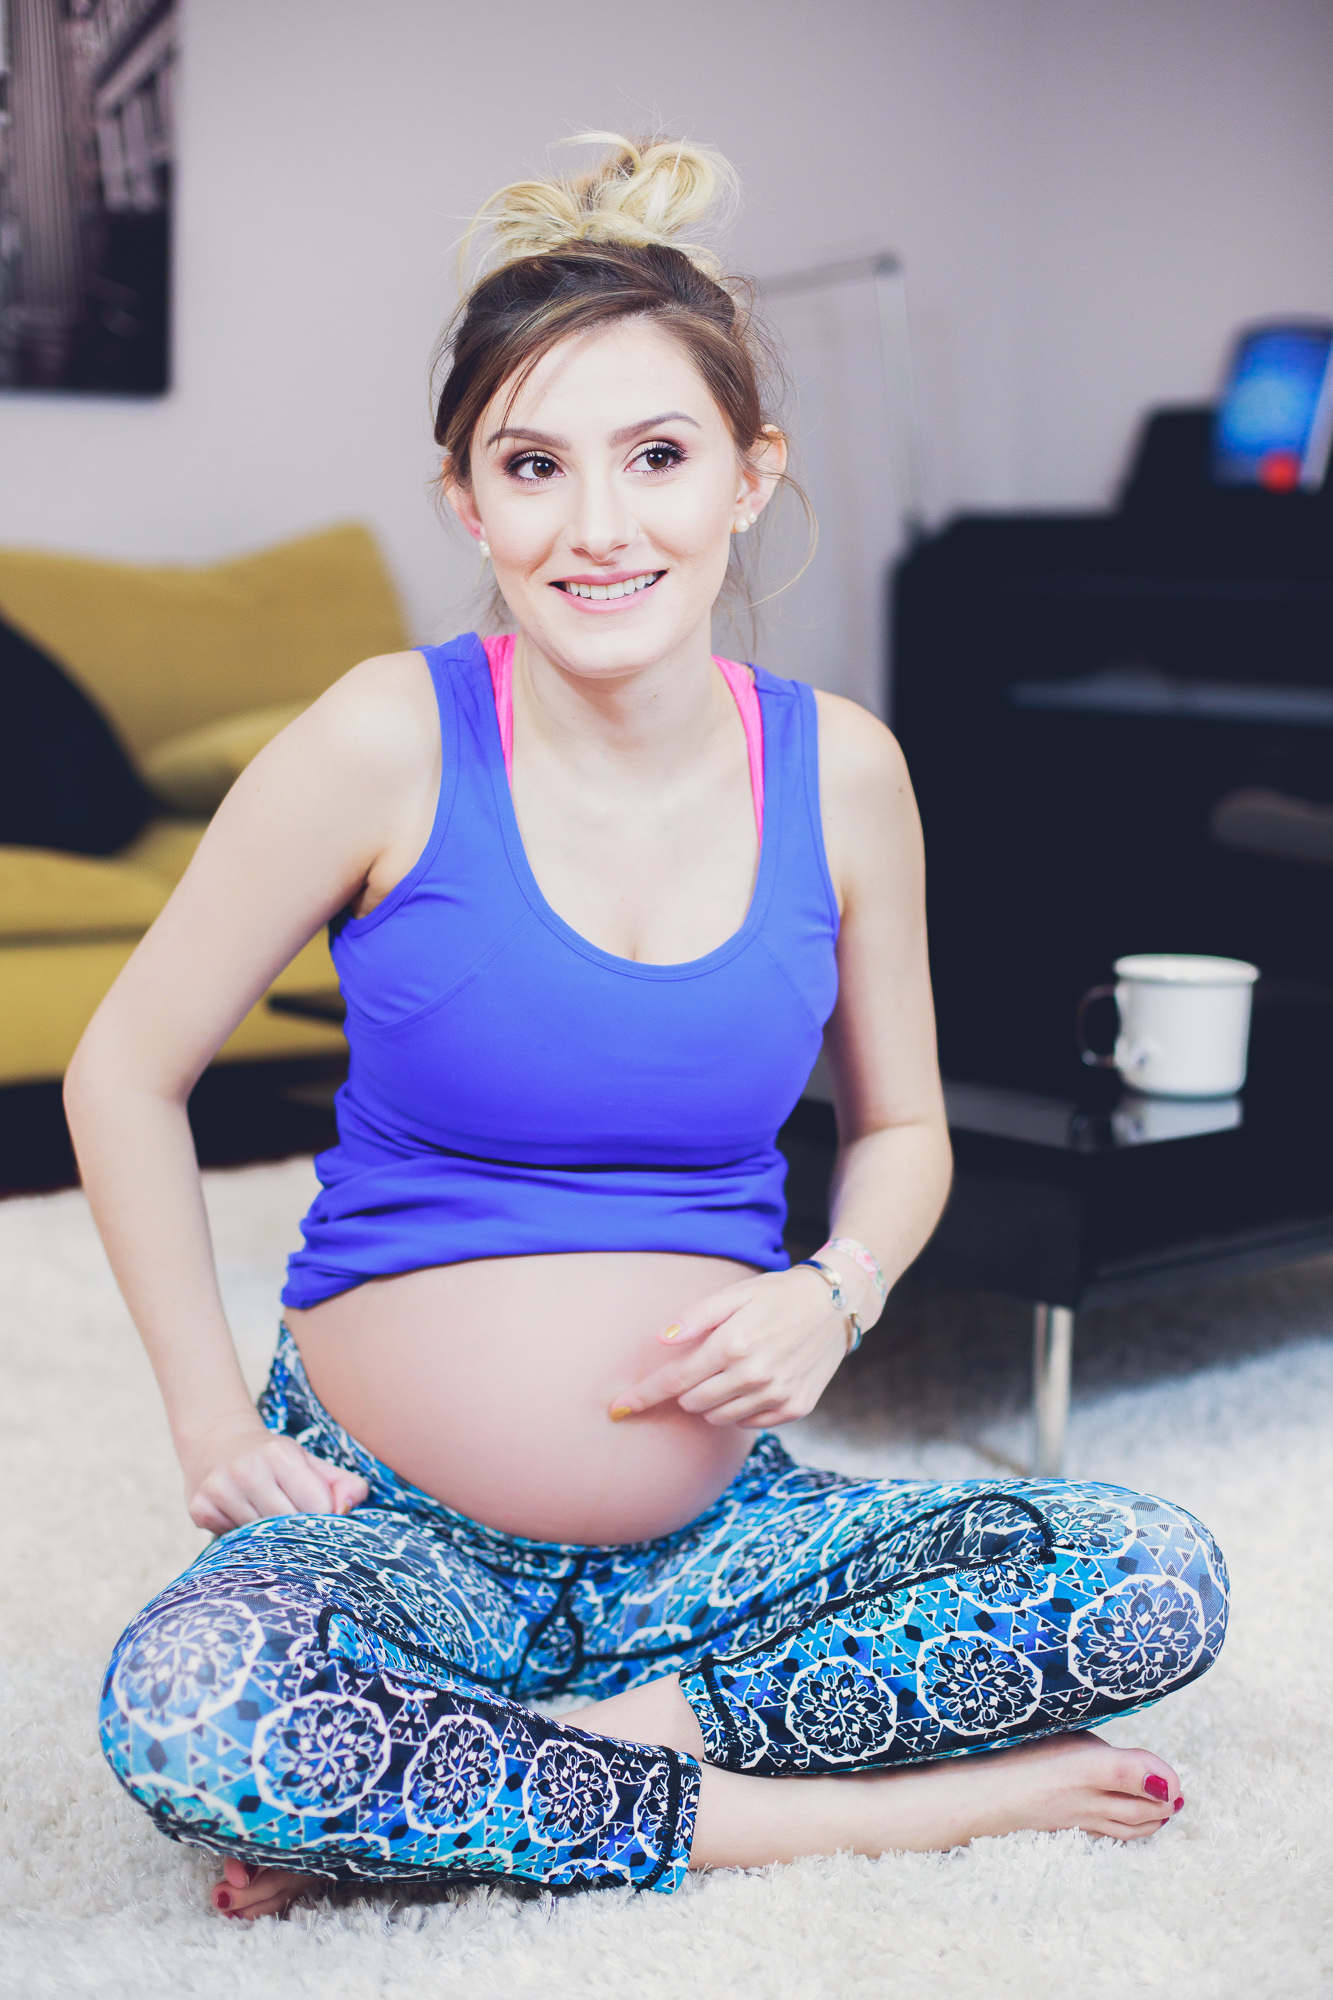 North Carolina Fashion, lifestyle, and beauty blogger Jessica Linn from Linn Style wearing POP! Maternity from Australia, a maternity fitness apparel company. Here are some pregnancy tips and tricks to help as you approach labor and to feel more comfortable.